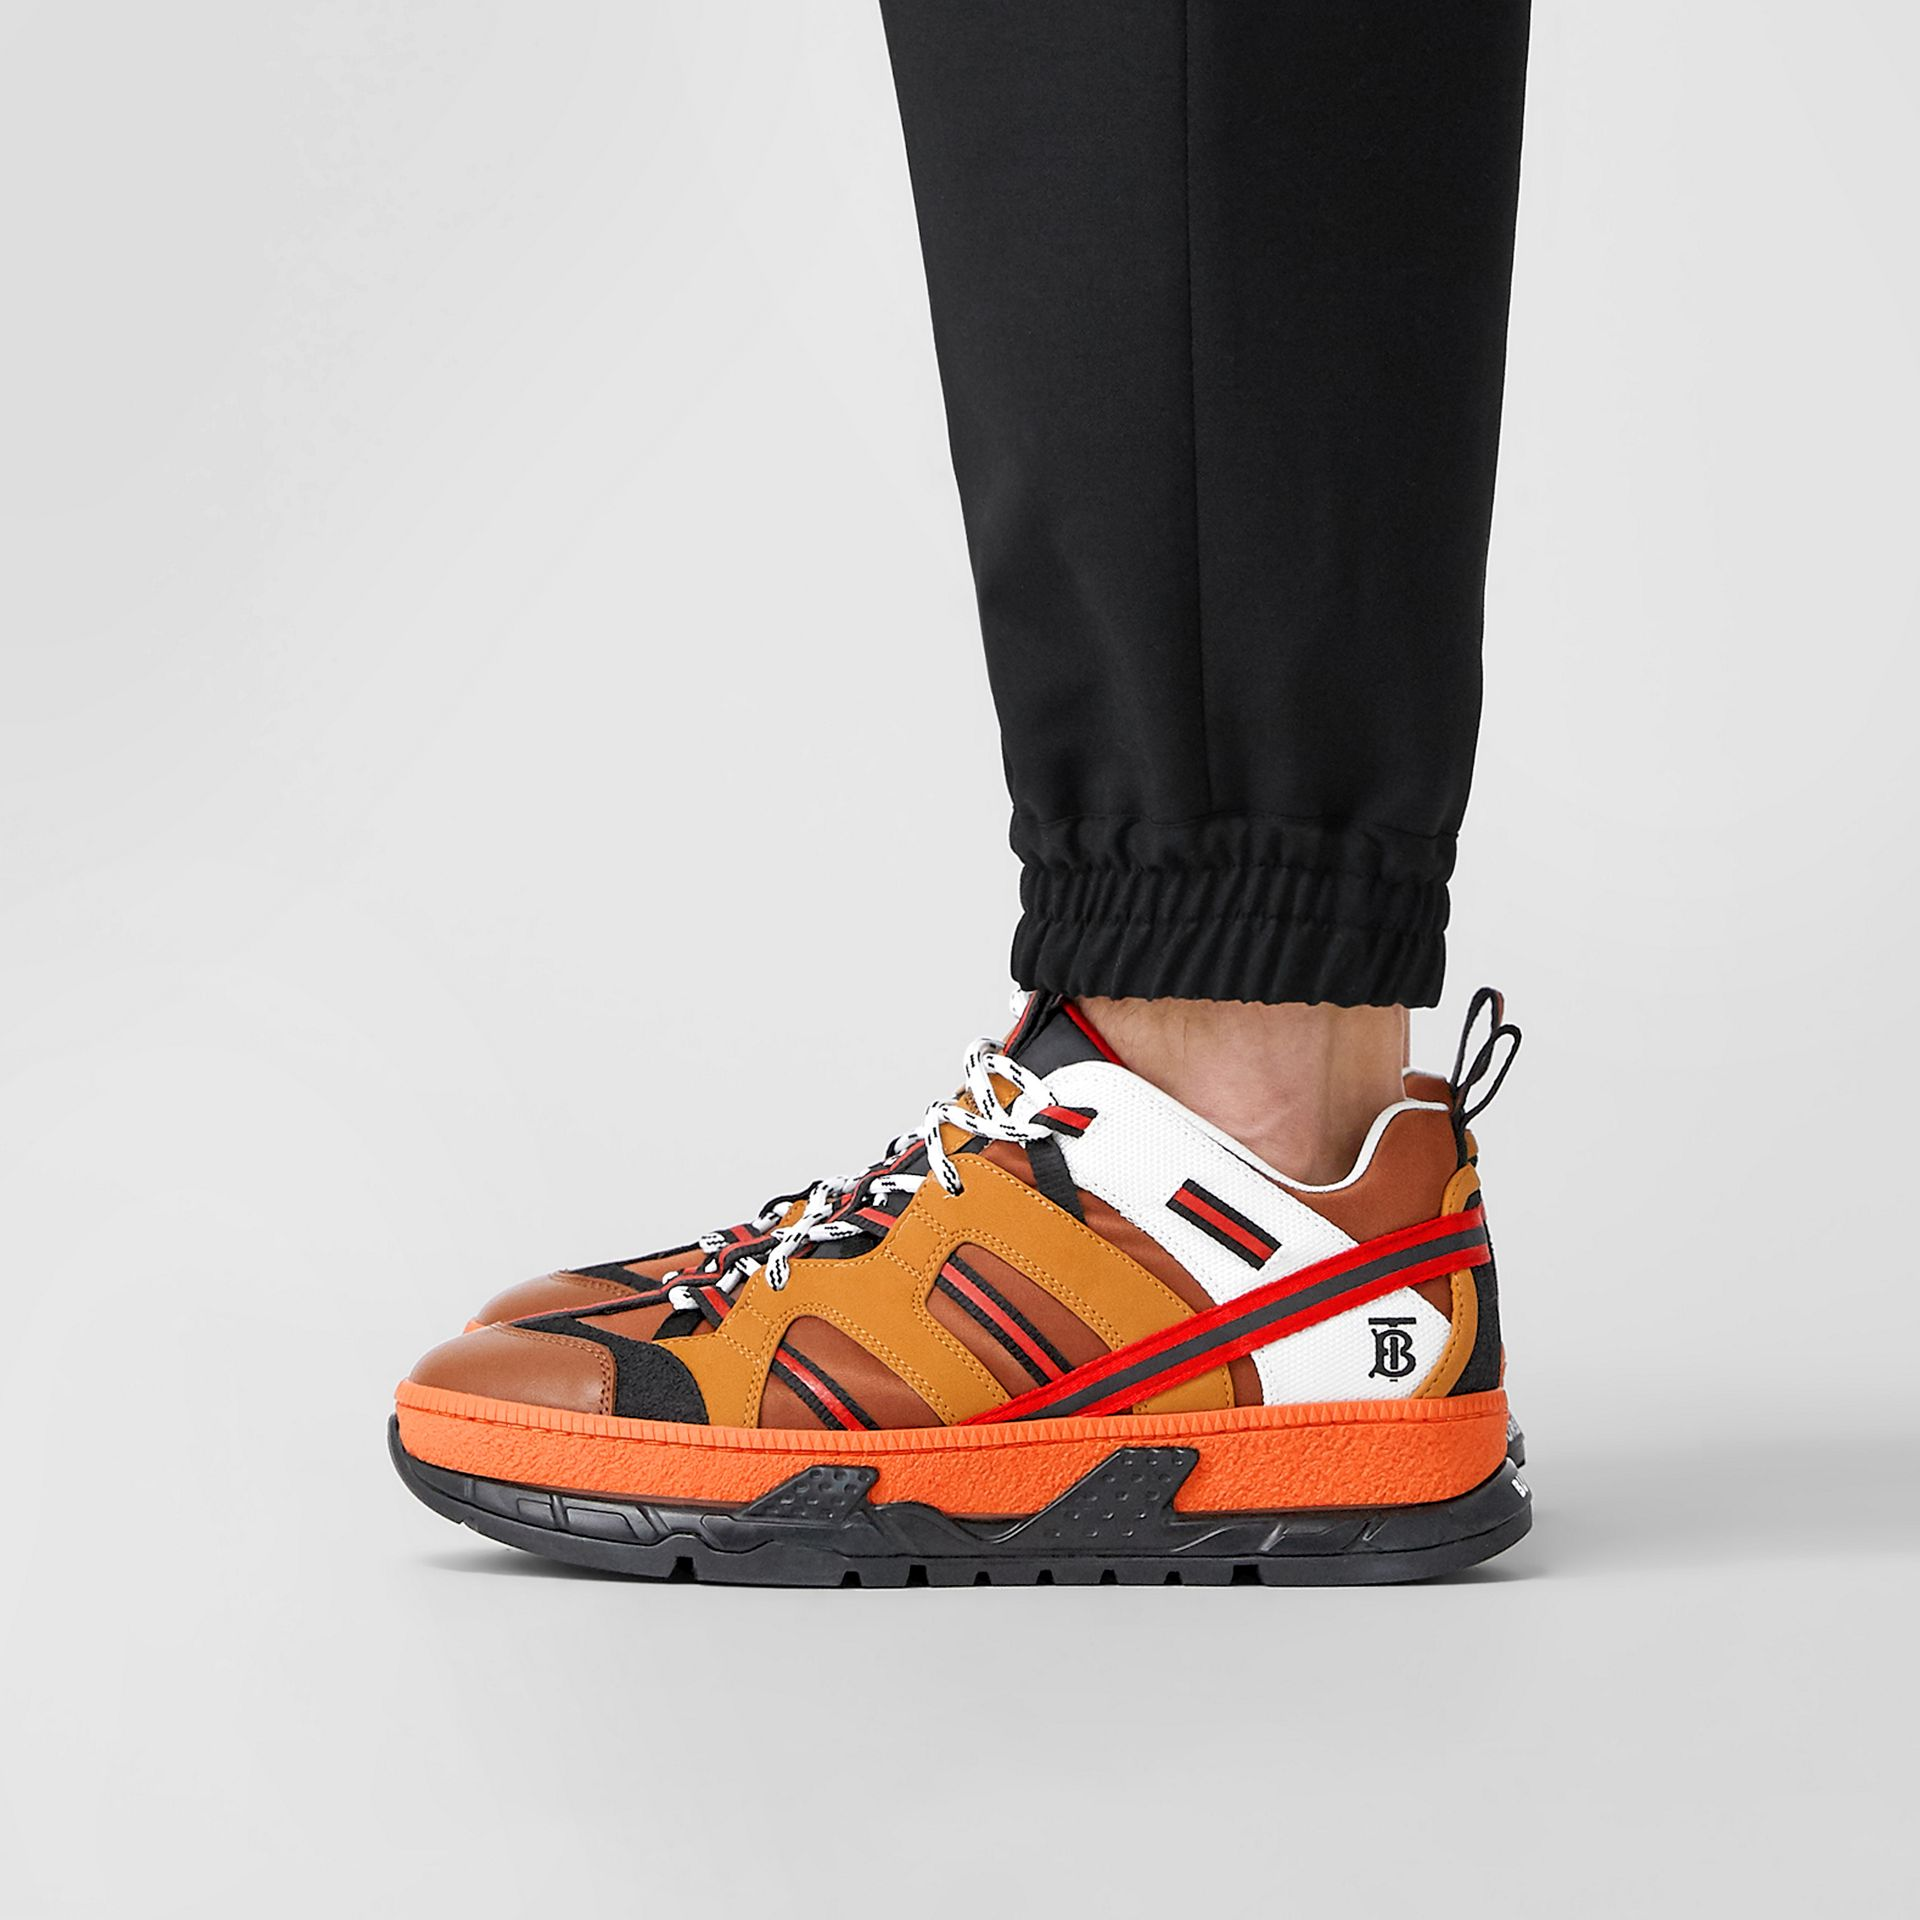 Nylon and Nubuck Union Sneakers in Orange - Men | Burberry United States - gallery image 2